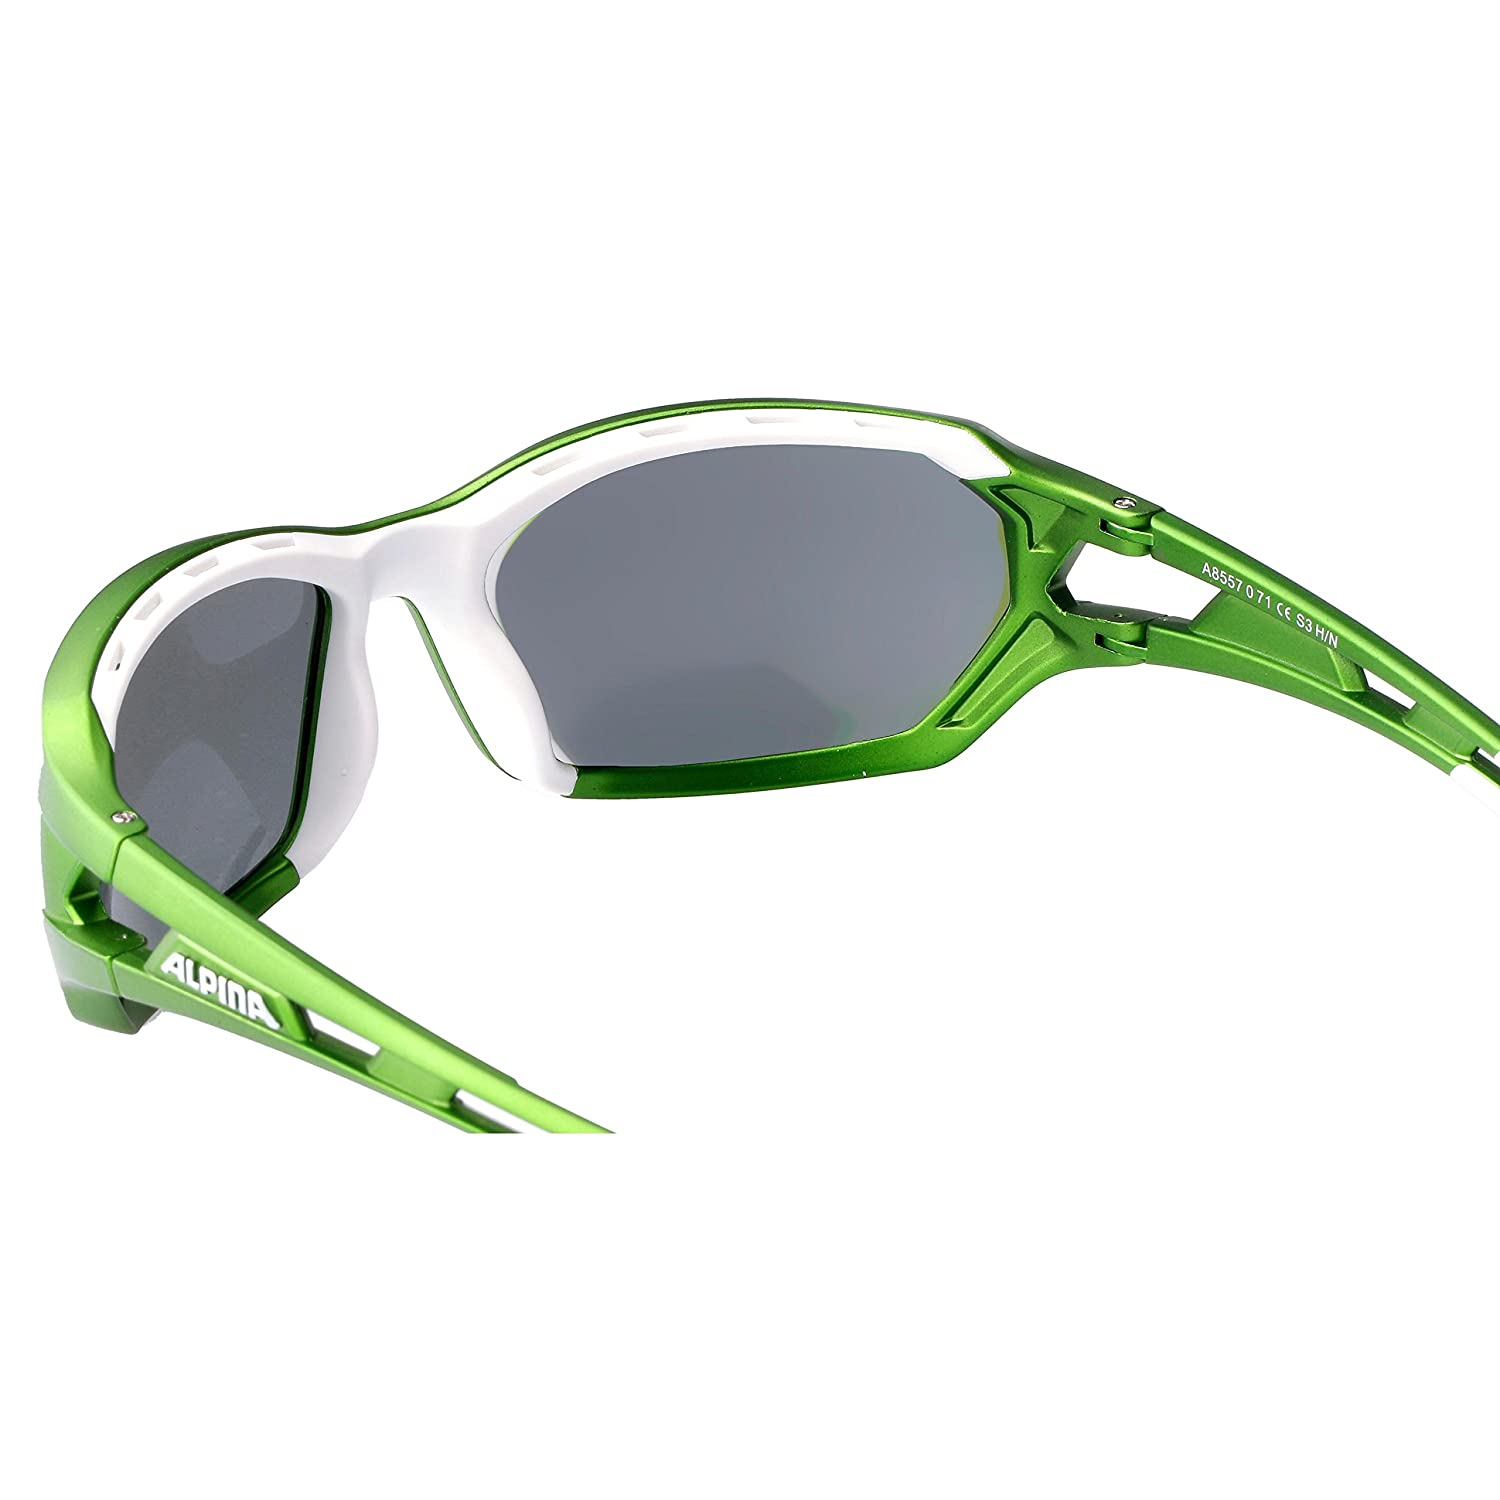 f3aa2198f3 ALPINA Grap Adult Berryn cm + Cycle Cycling Glasses Goggles - Green White  One Size  Amazon.co.uk  Sports   Outdoors